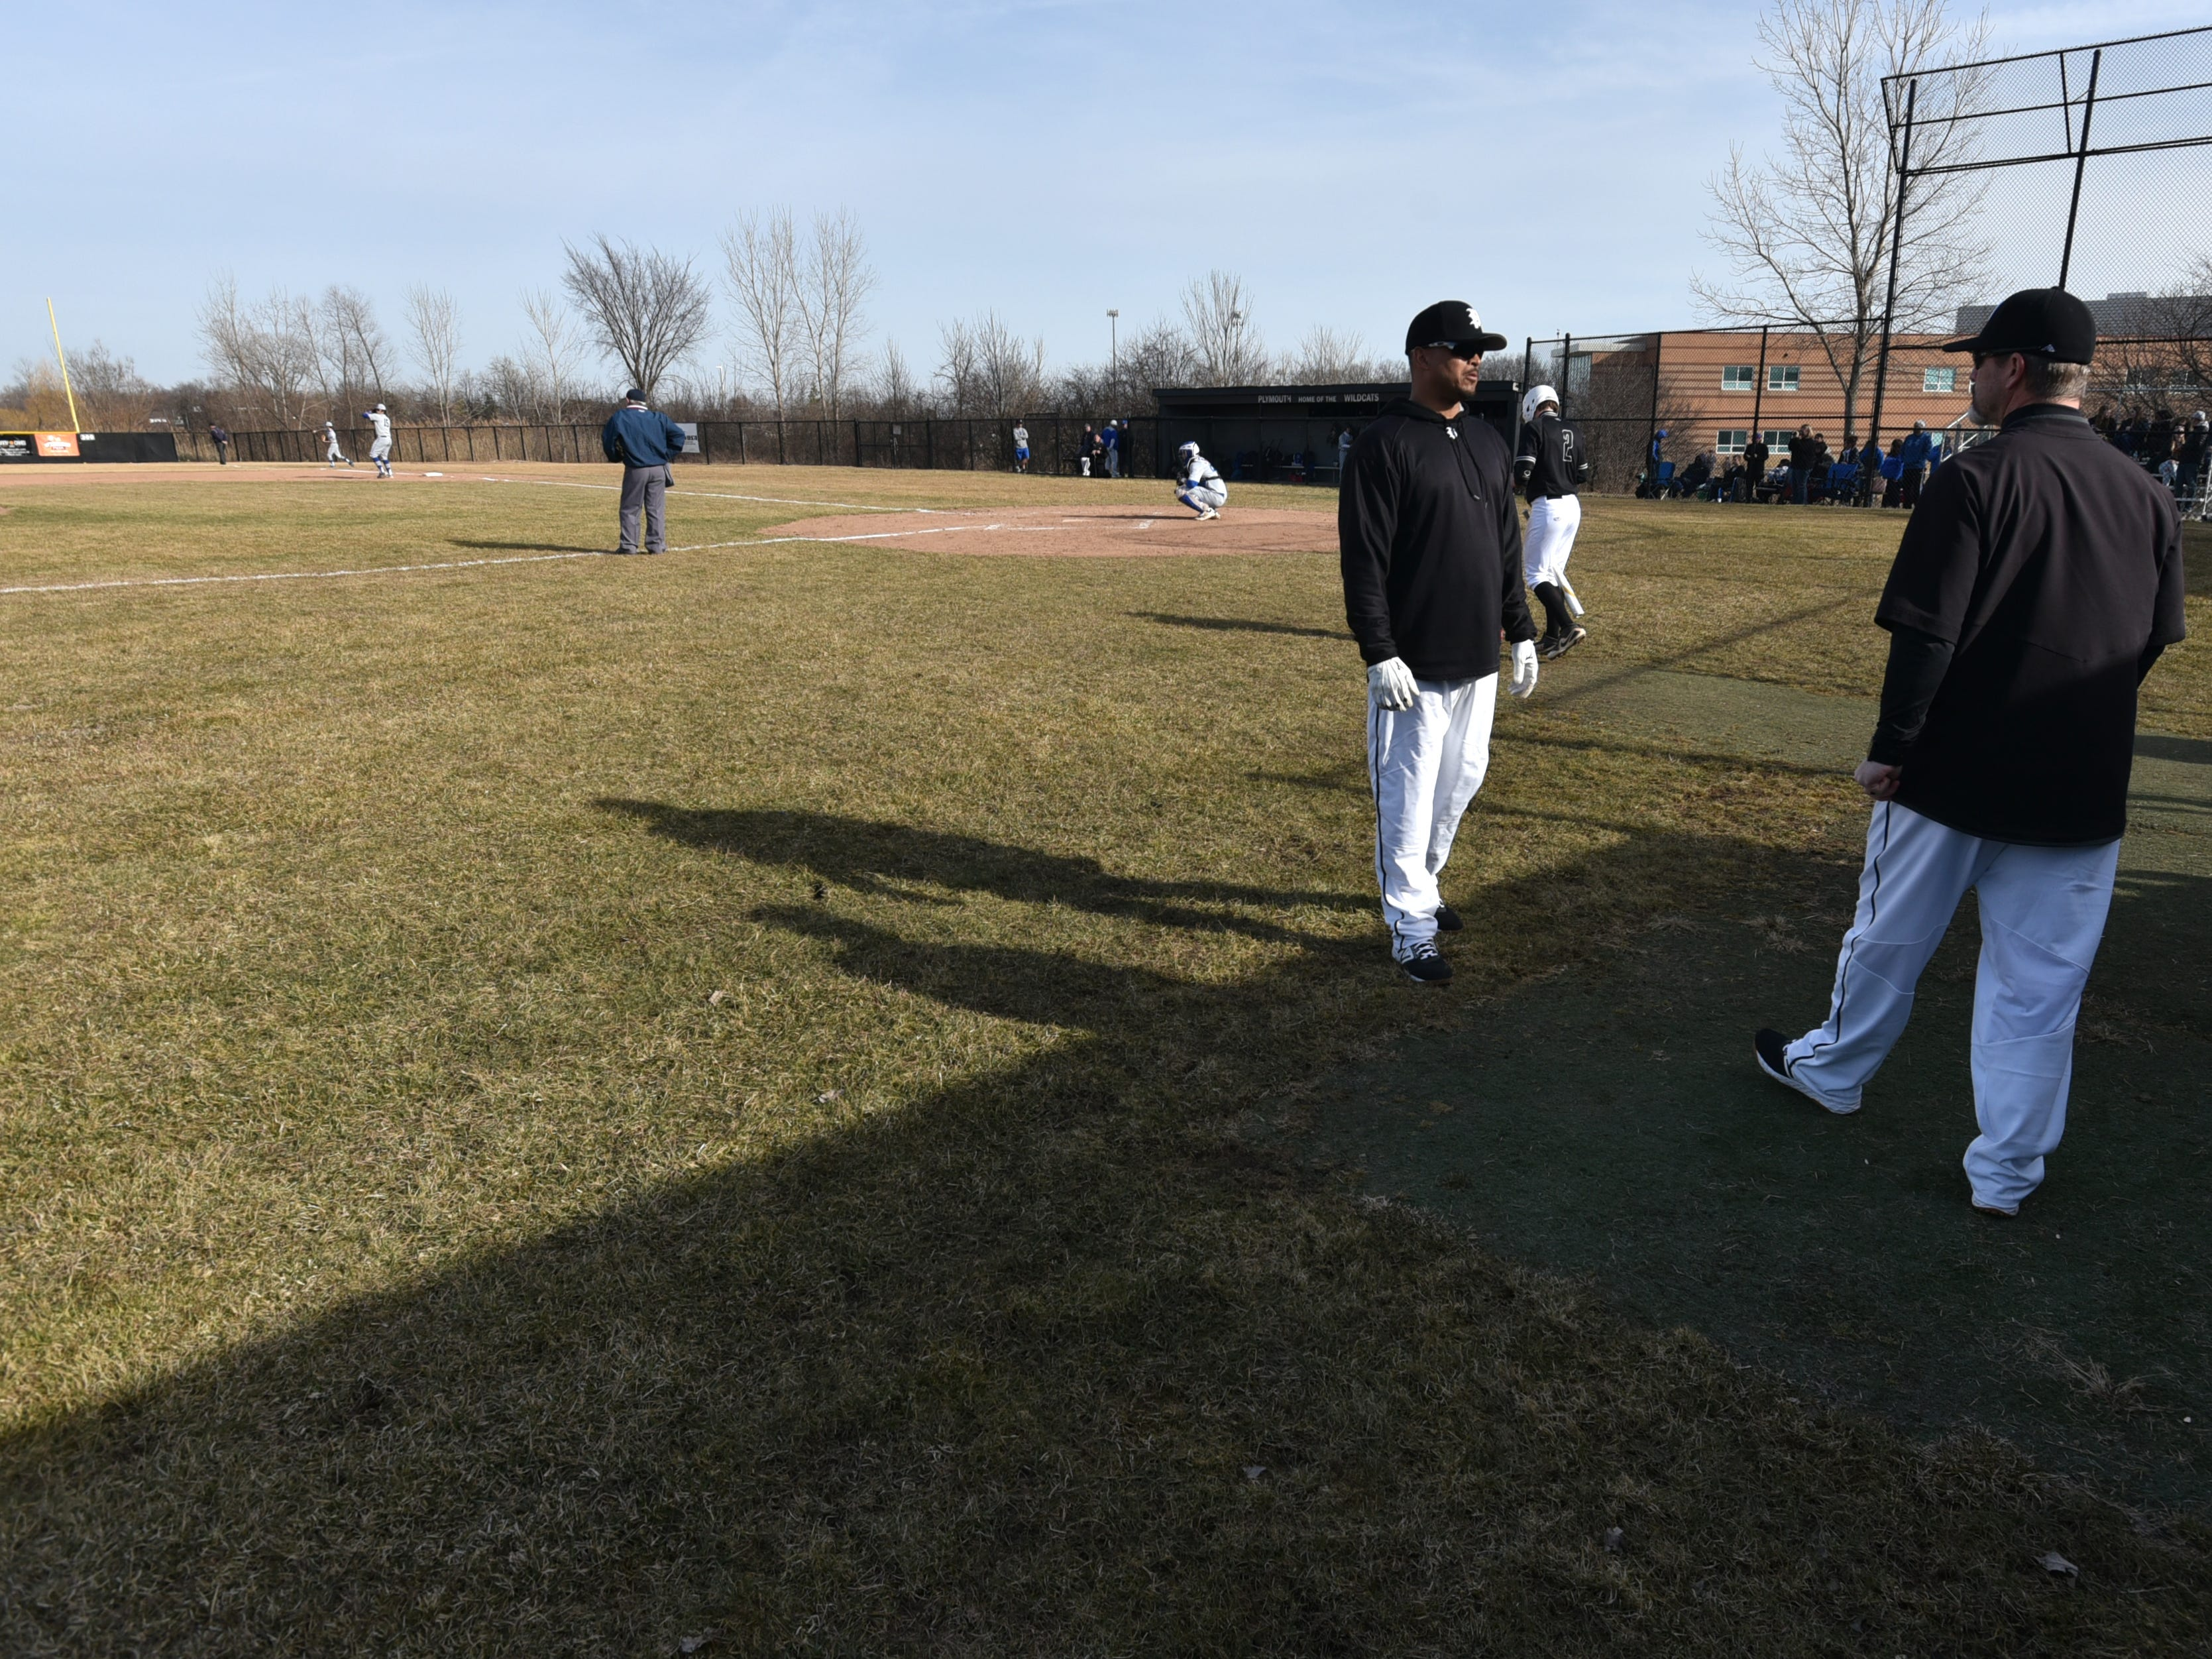 Plymouth High hosted Salem High on March 27 for a baseball game. The Wildcats won 5-2.